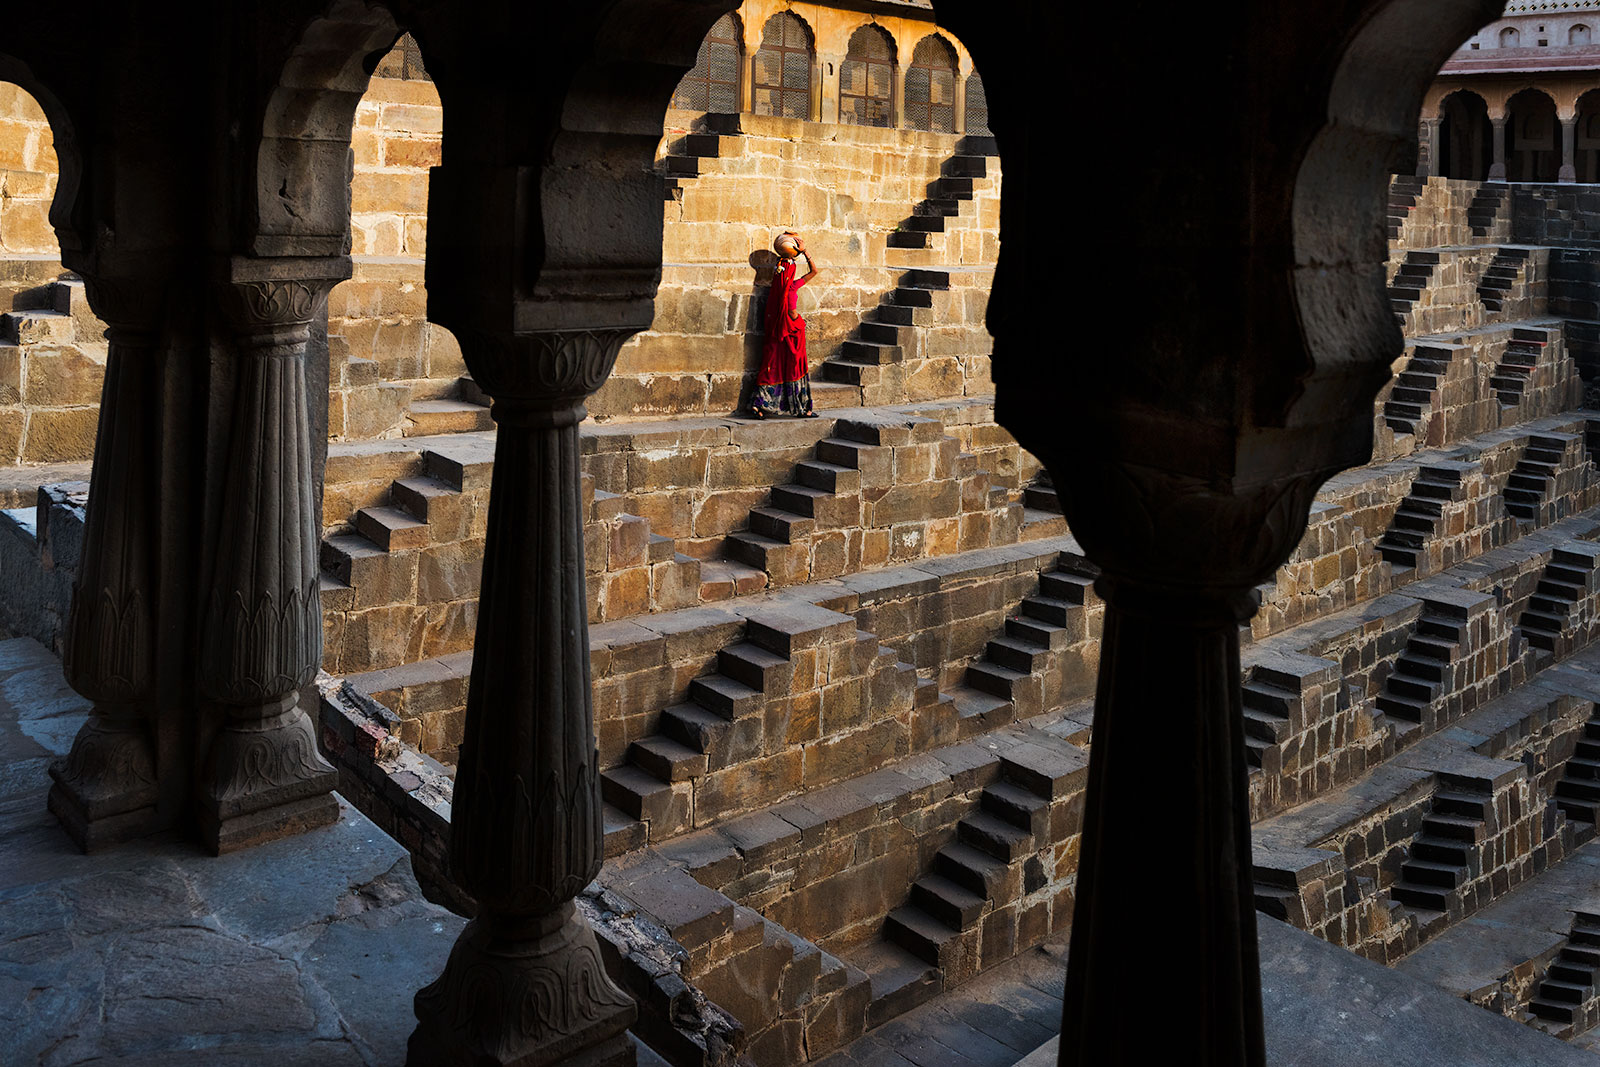 Vacheron-Constantin---Steve-McCurry---Chand-Baori-India-1